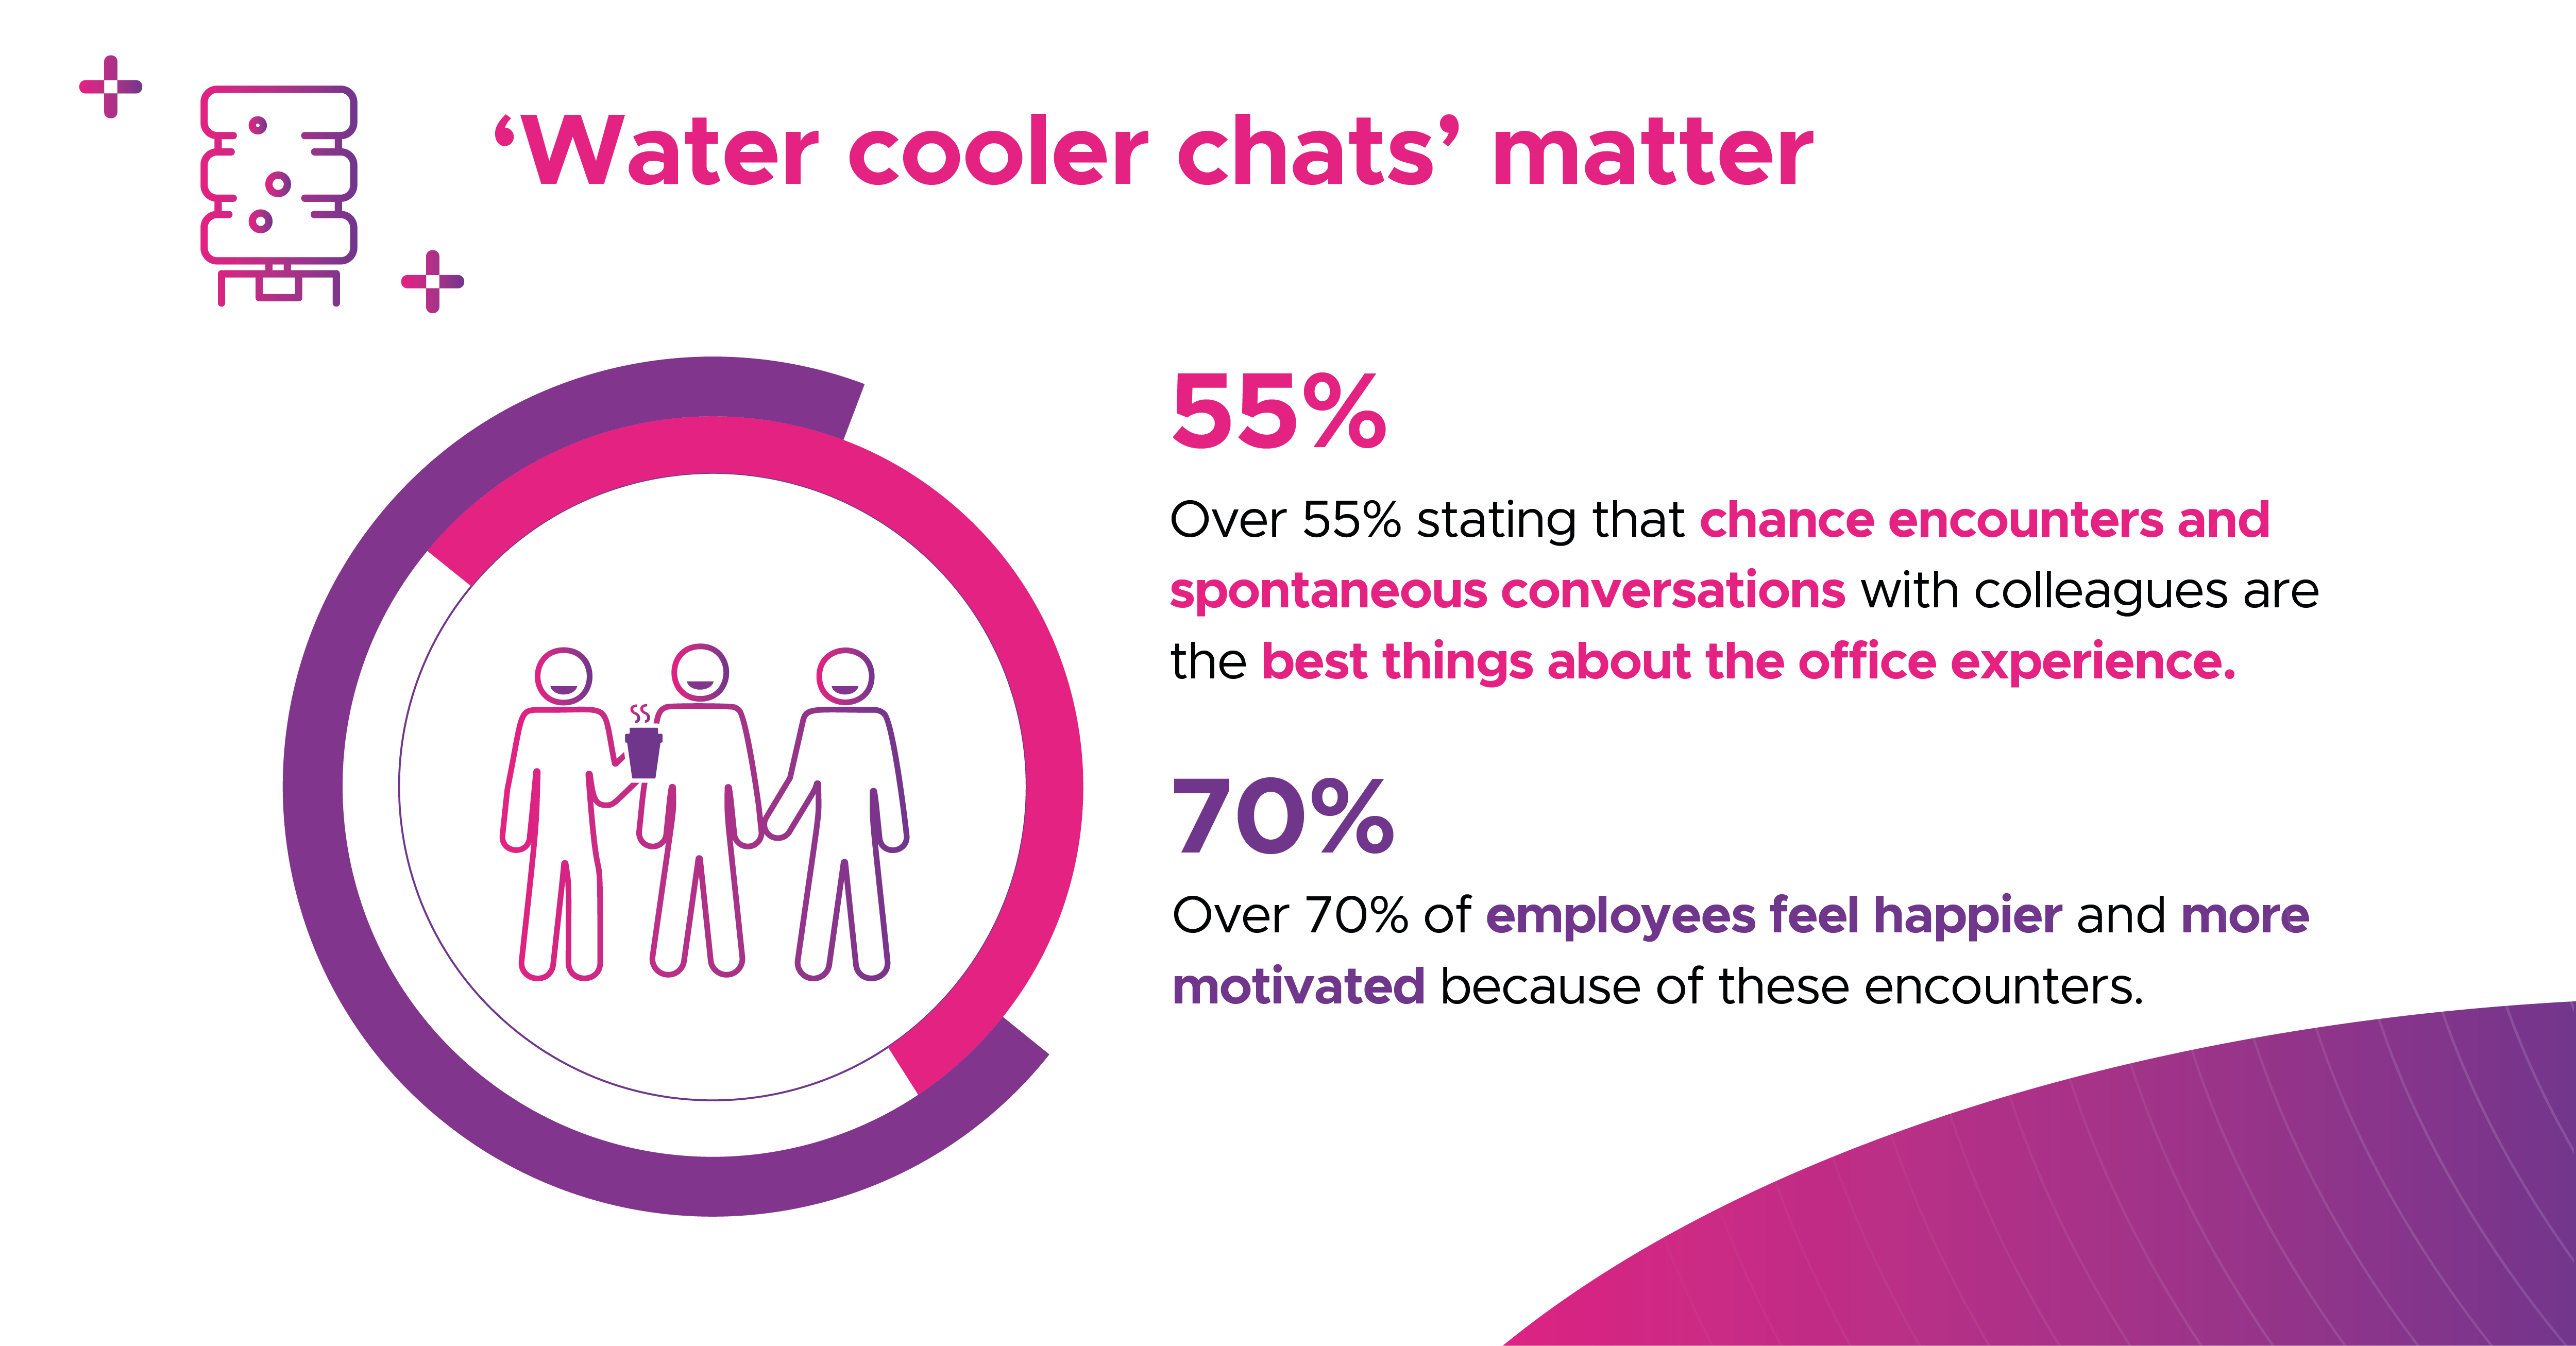 Infographic about the importance of in-person encounters in the workplace